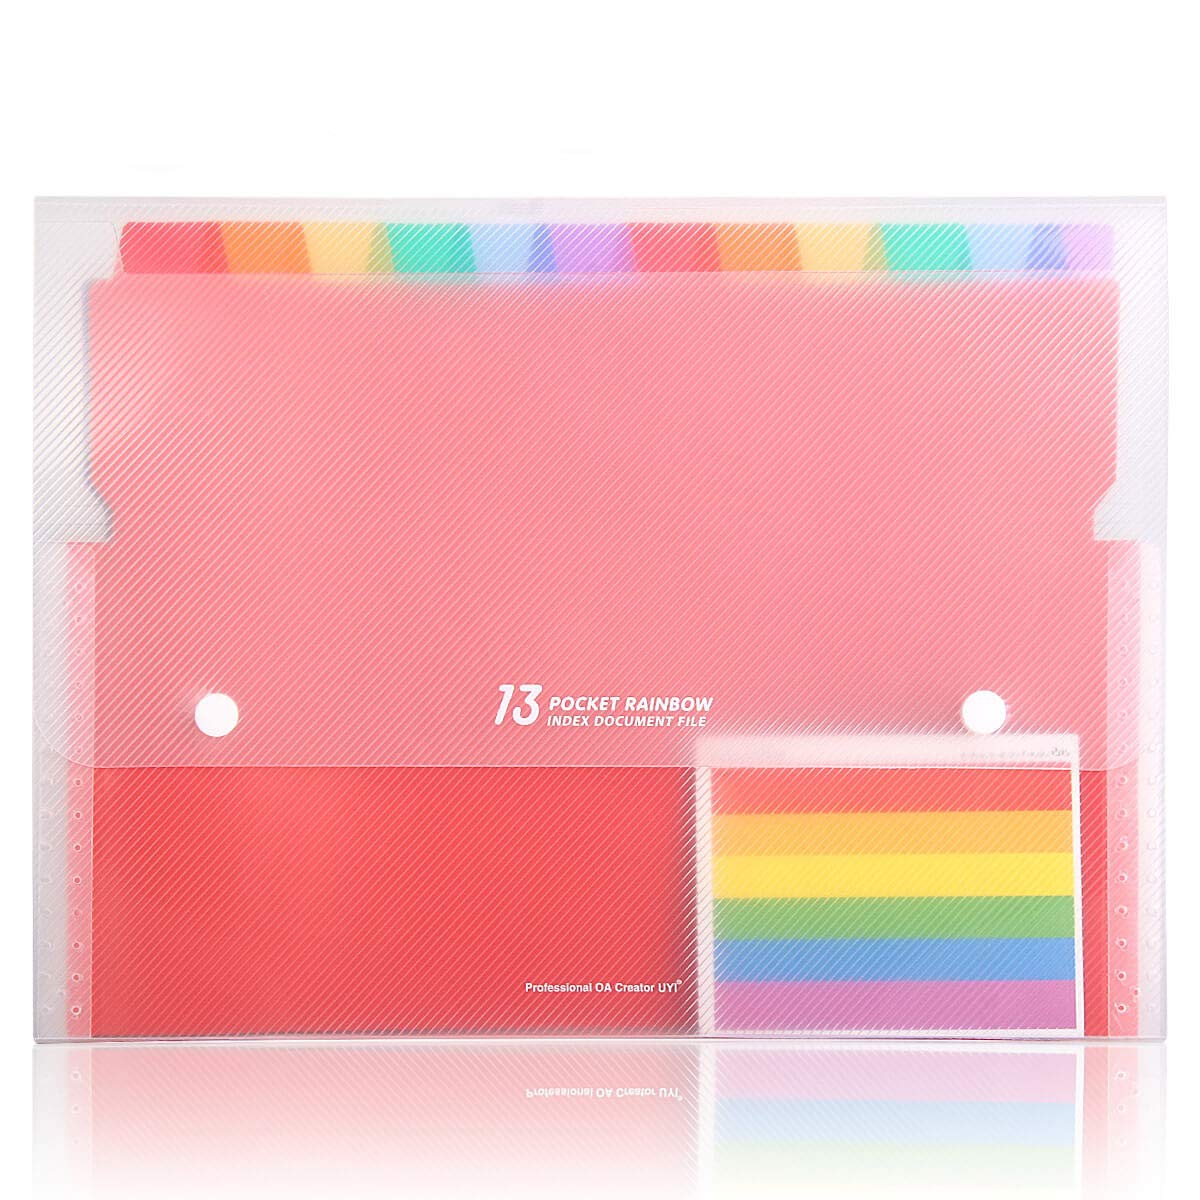 HJSMing 11 13 Pockets Portable Rainbow Expandable Plastic Folders/A4 Letter Size File Organizer with Buttons-for School Office Supplies